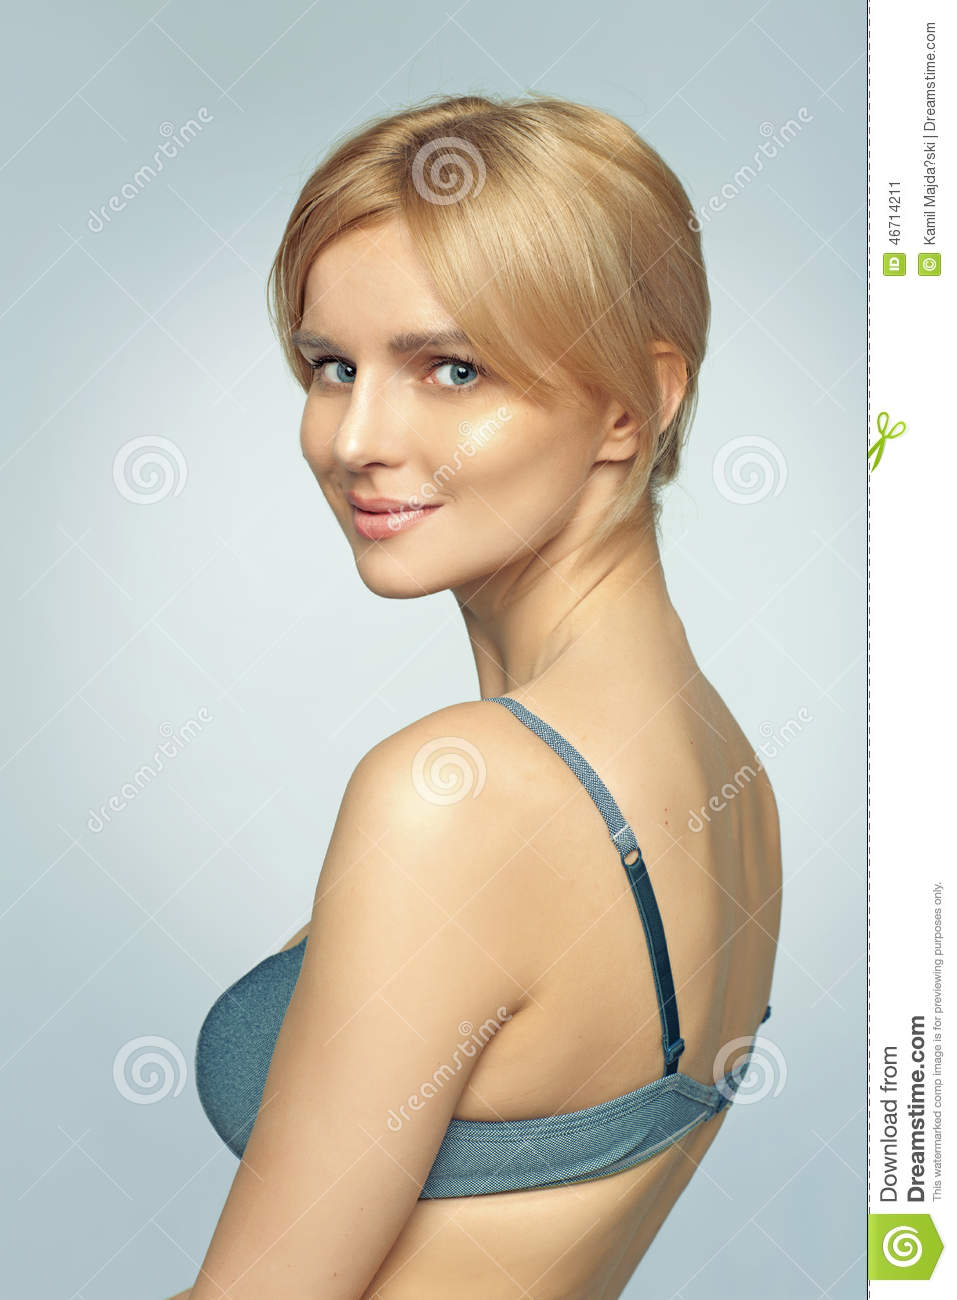 Delicate Young Woman Wearing Blue Bra Stock Image - Image ...